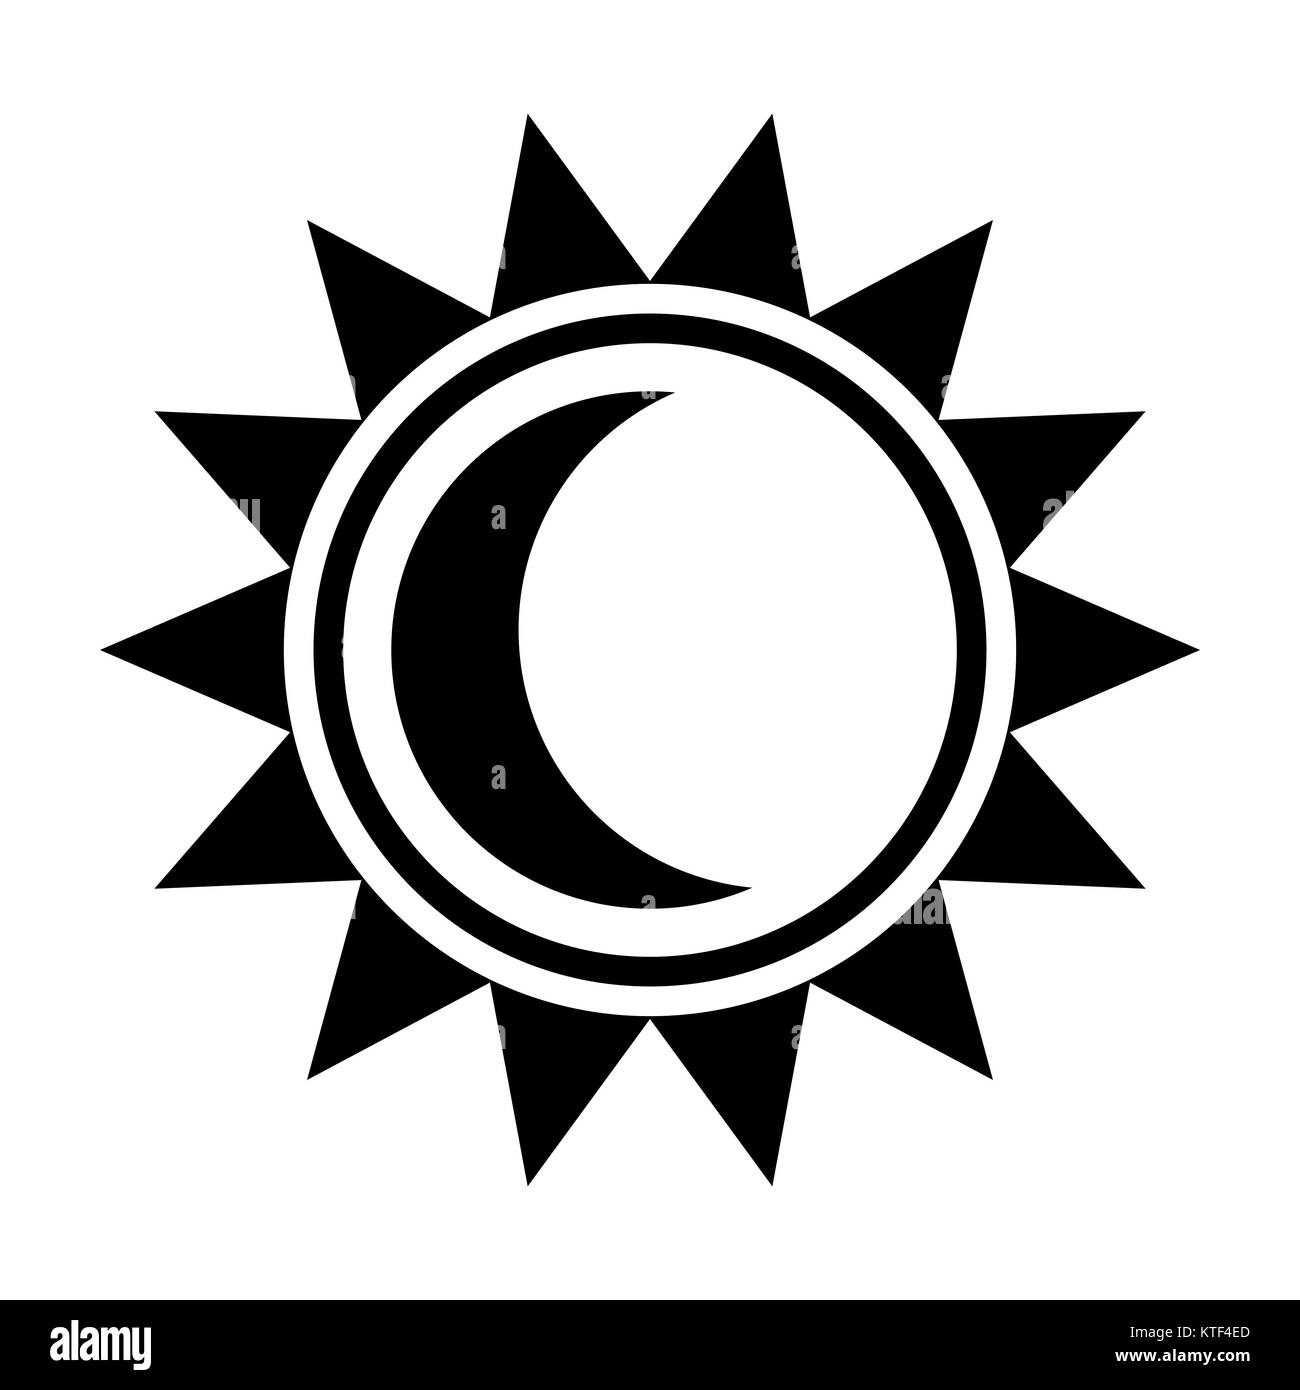 Pictures of Crescent Moon And Sun Symbol - #rock-cafe